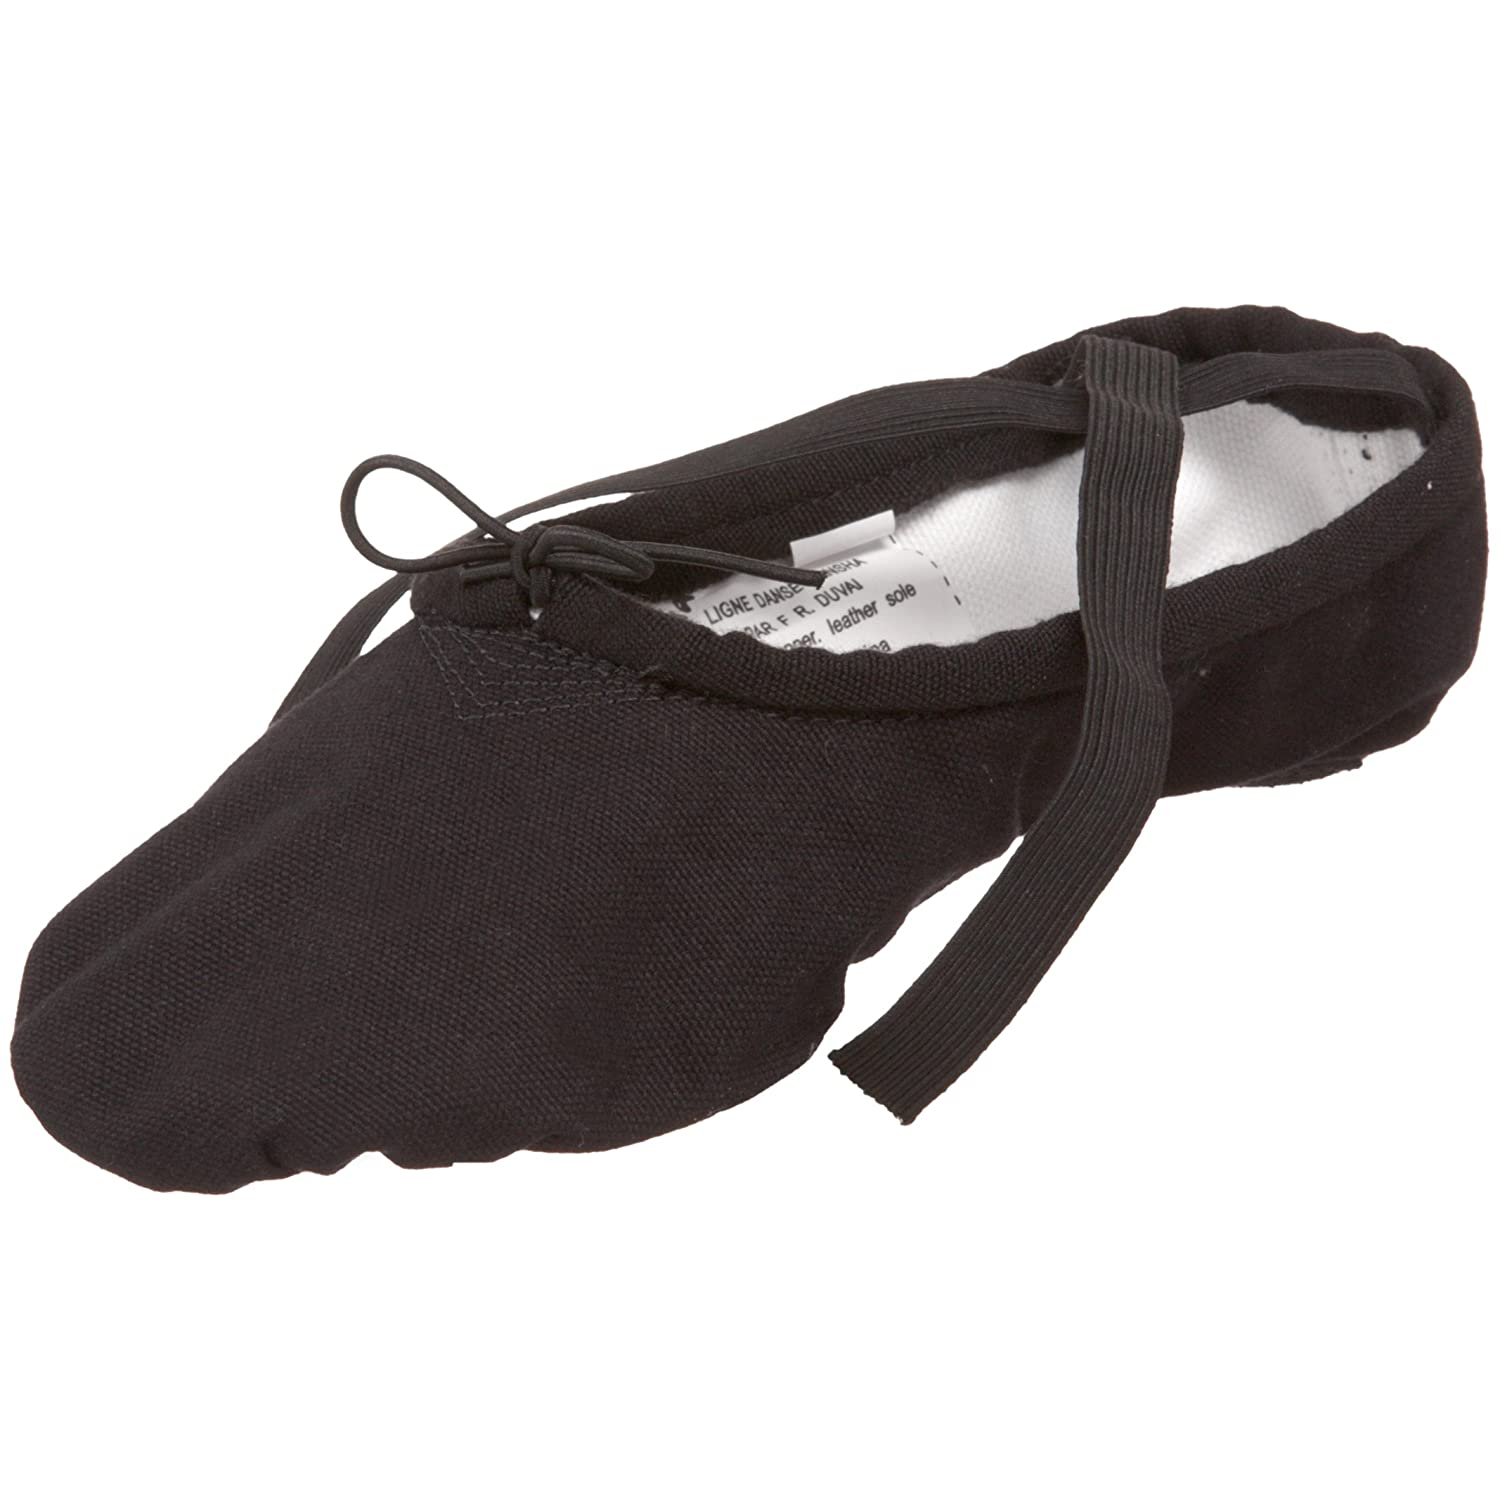 Adult#1 Pro Canvas Split-Sole Ballet Shoes S1C S1CBLK9 W Black 9W